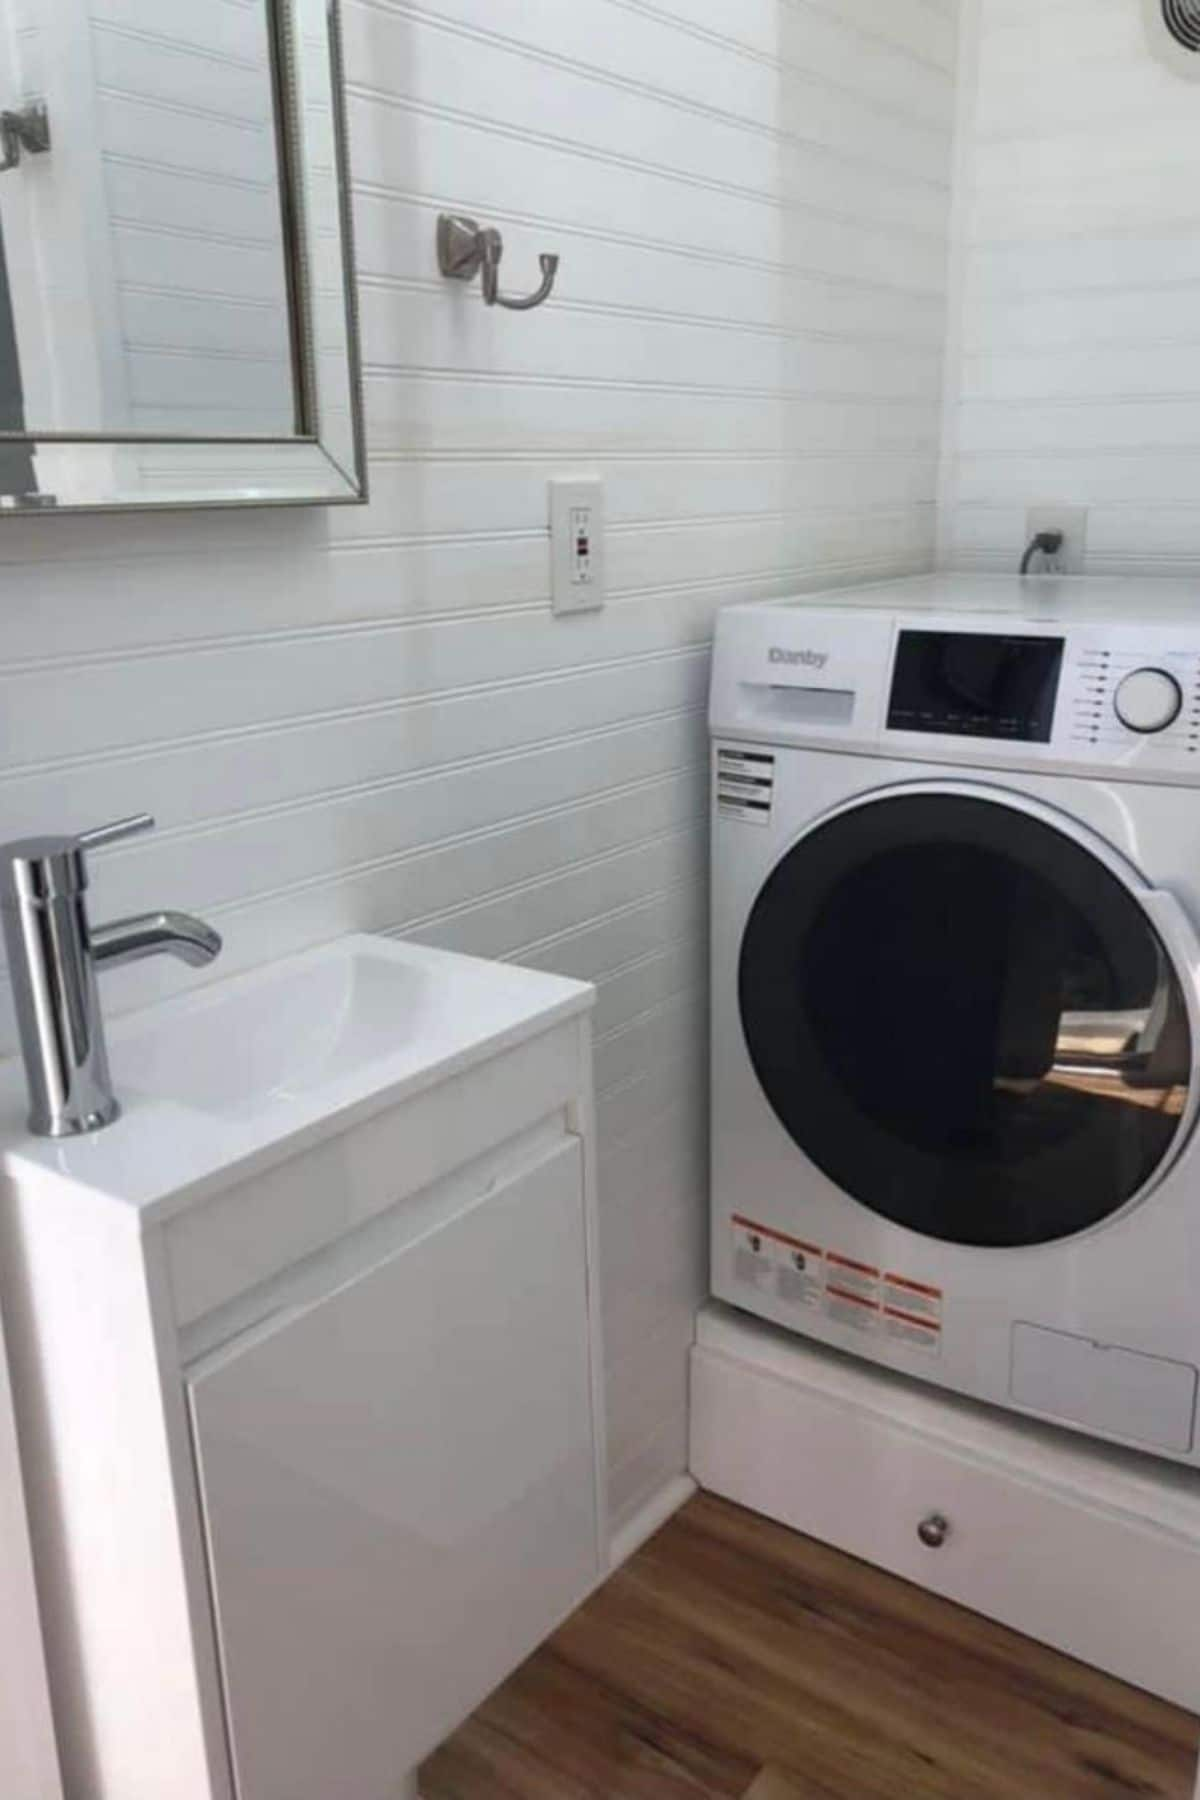 Washer and dryer combination against white wall